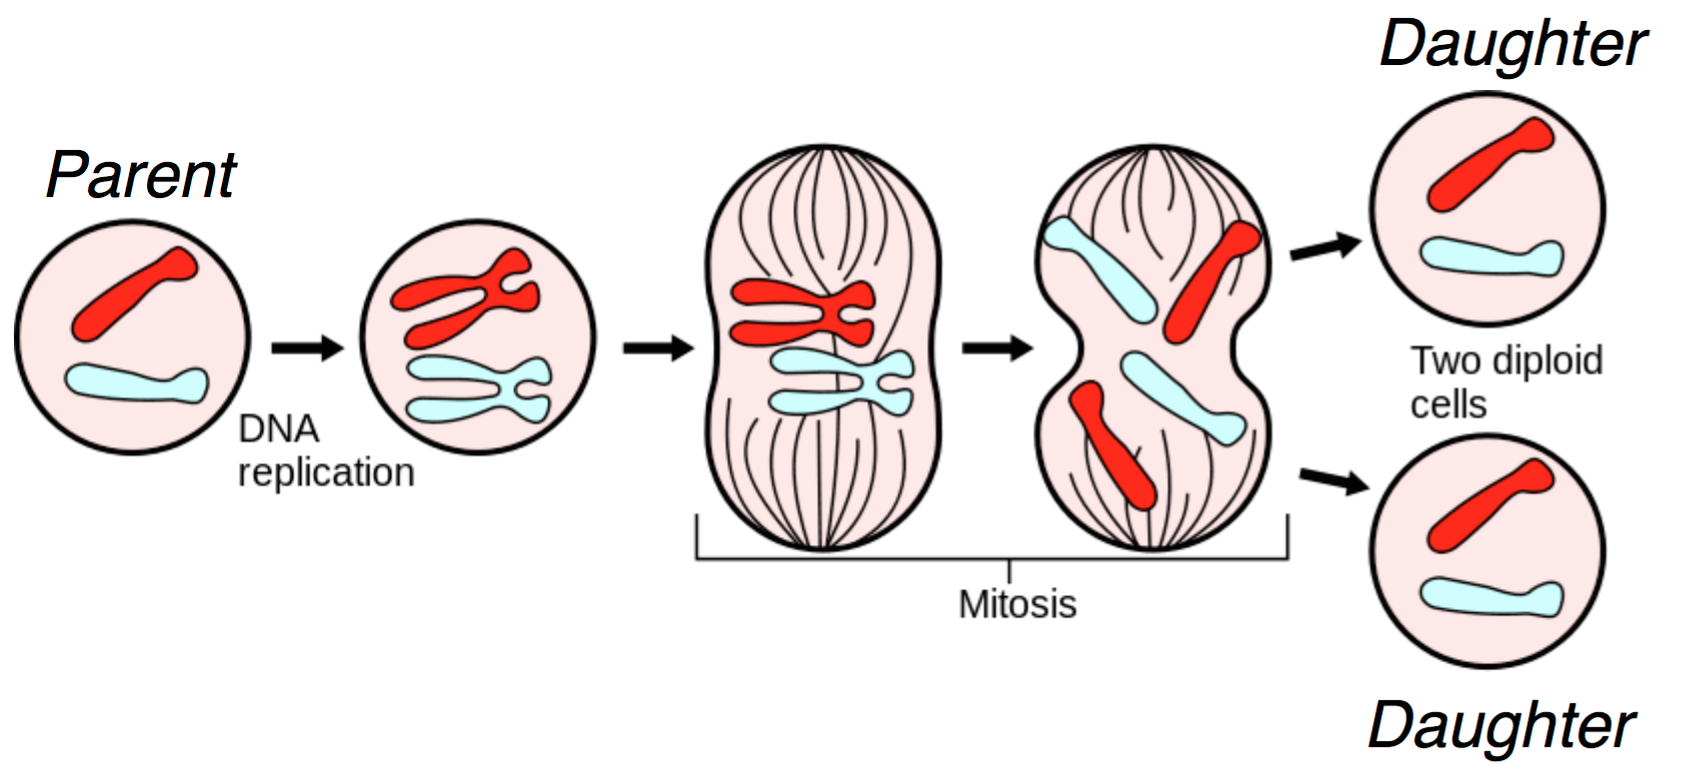 Lecture 2 basics of dna sequencing by synthesis a figure illustrating mitosis borrowed from wikipedia httpenpediawikimitosis pooptronica